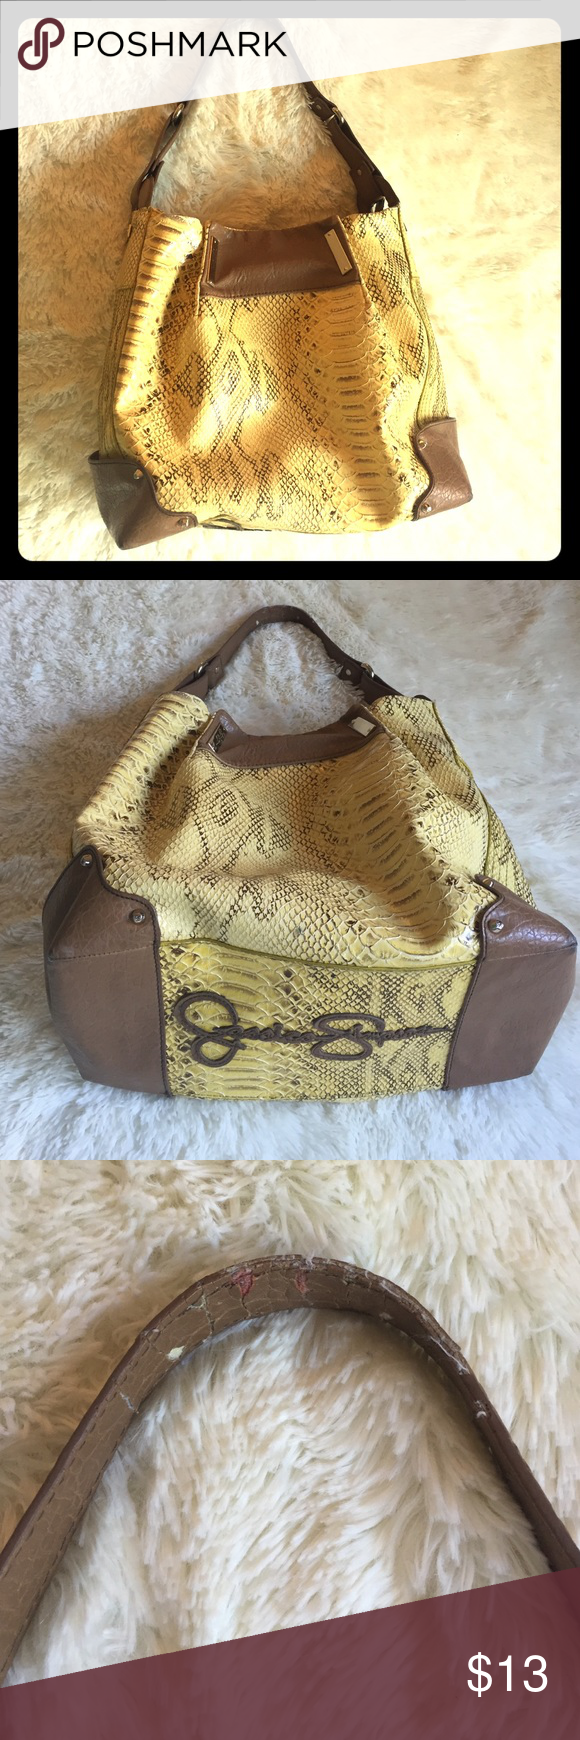 Jessica Simpson Yellow Snakeskin Some wear. Visible on pics.  Overall decent condition. Jessica Simpson Bags Hobos